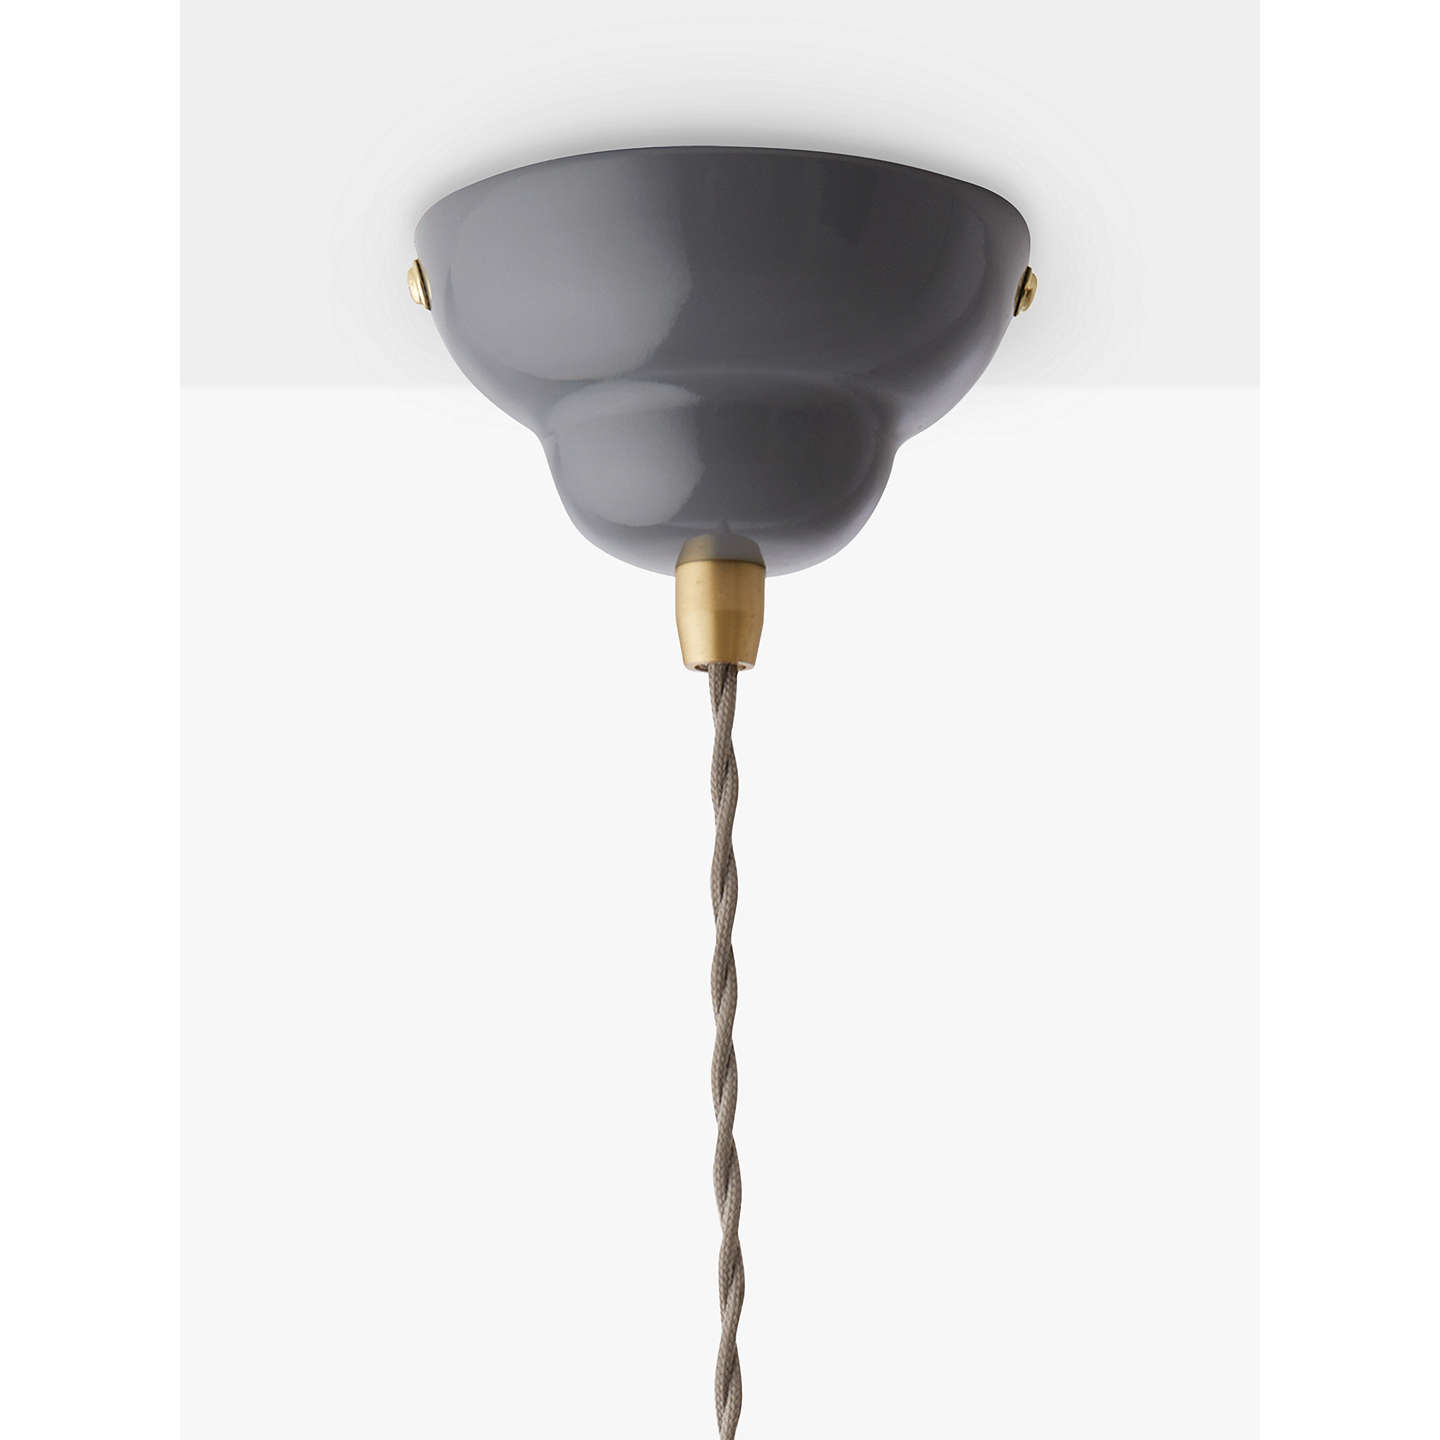 brass columbia agb item shown hudson mini valley glass inch lighting aged in magnifying finish light wide cfm pendant image